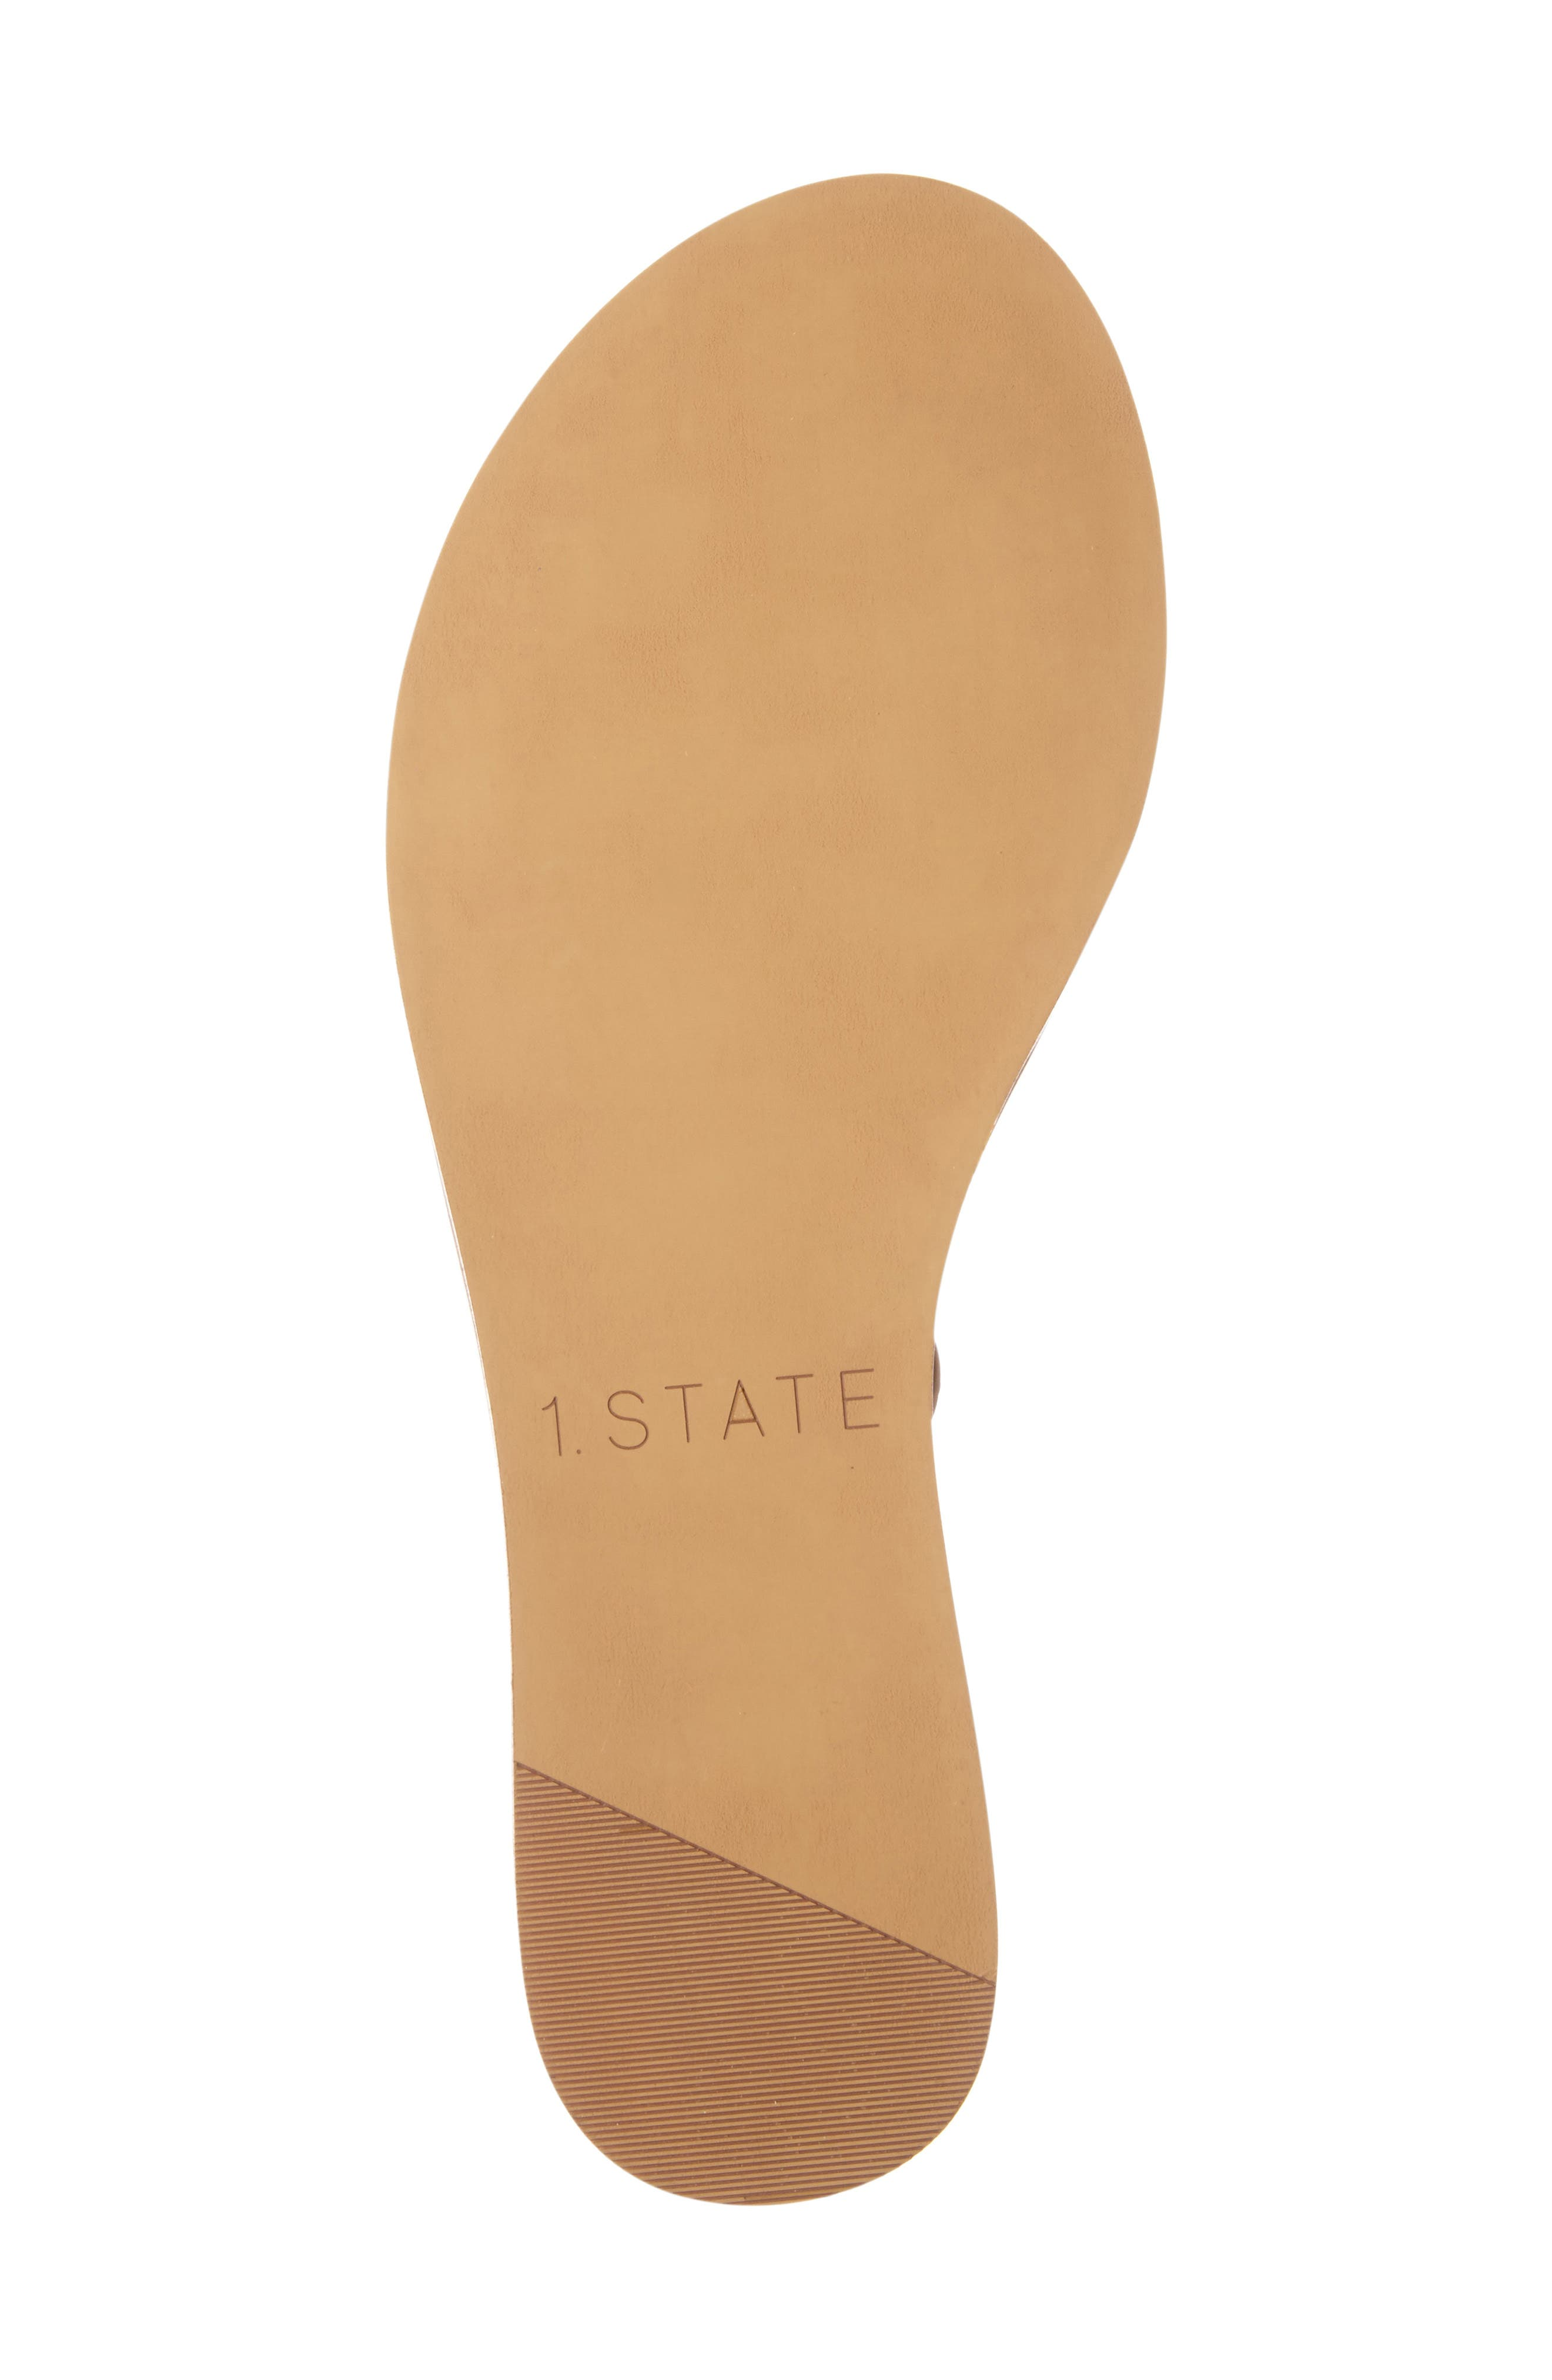 Lamanna Ankle Strap Sandal,                             Alternate thumbnail 4, color,                             Tan Leather